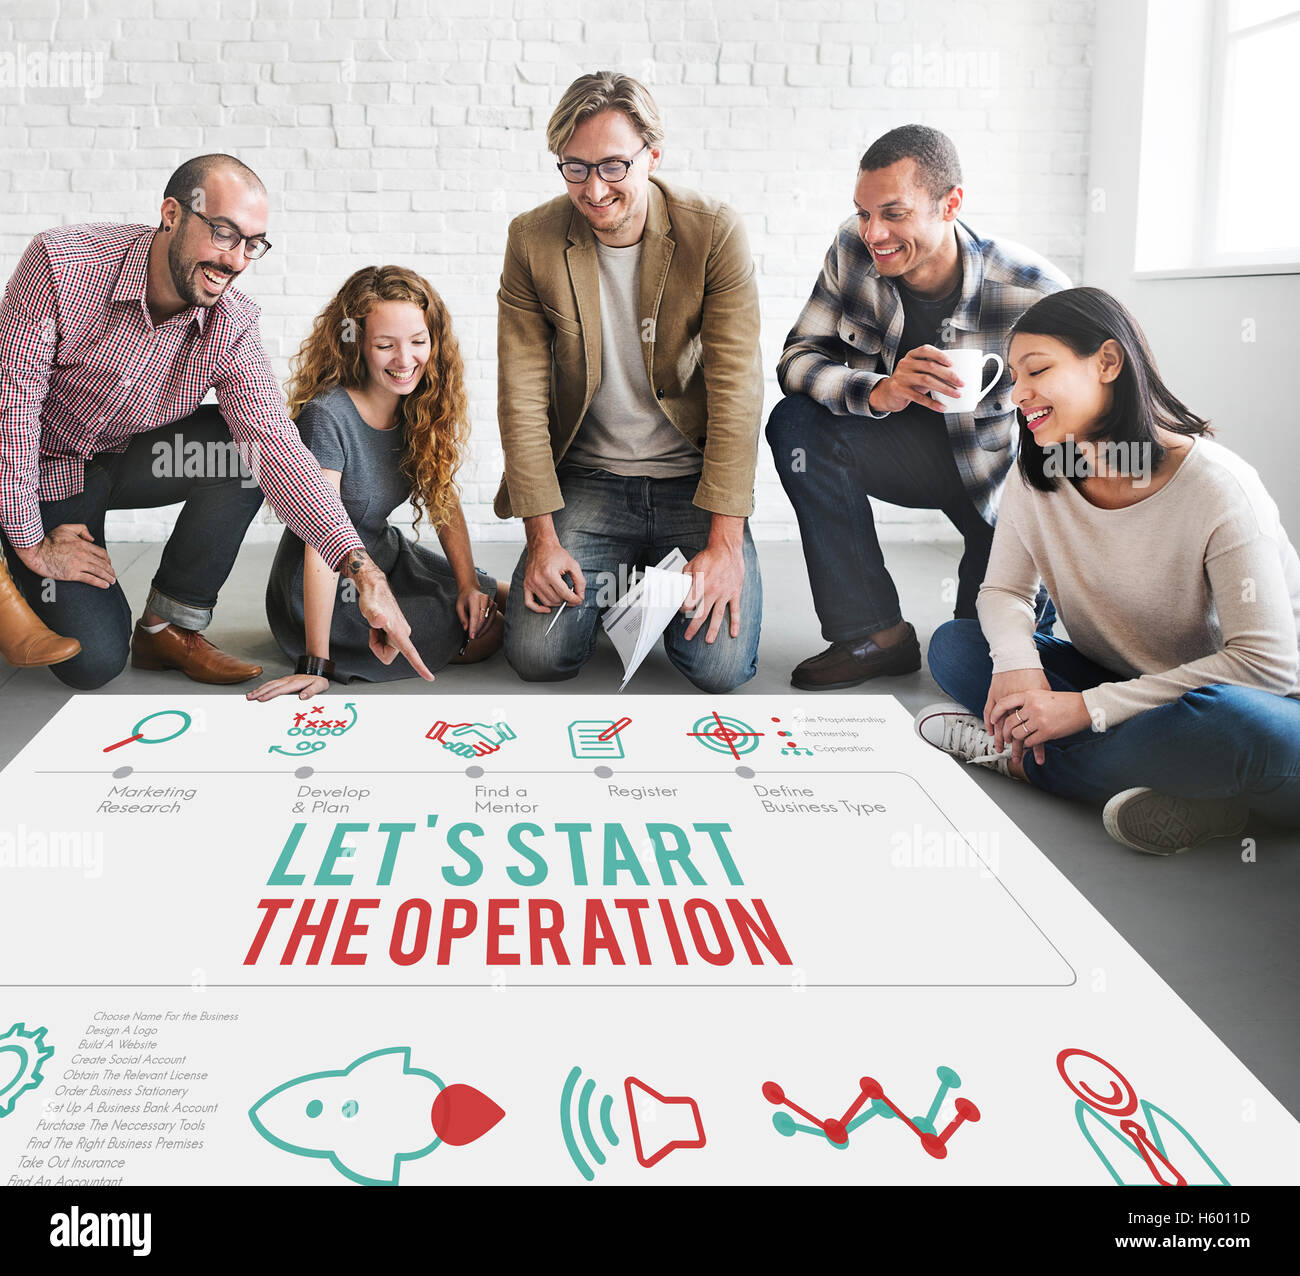 Operation Active Start Useful Practical Start Concept - Stock Image